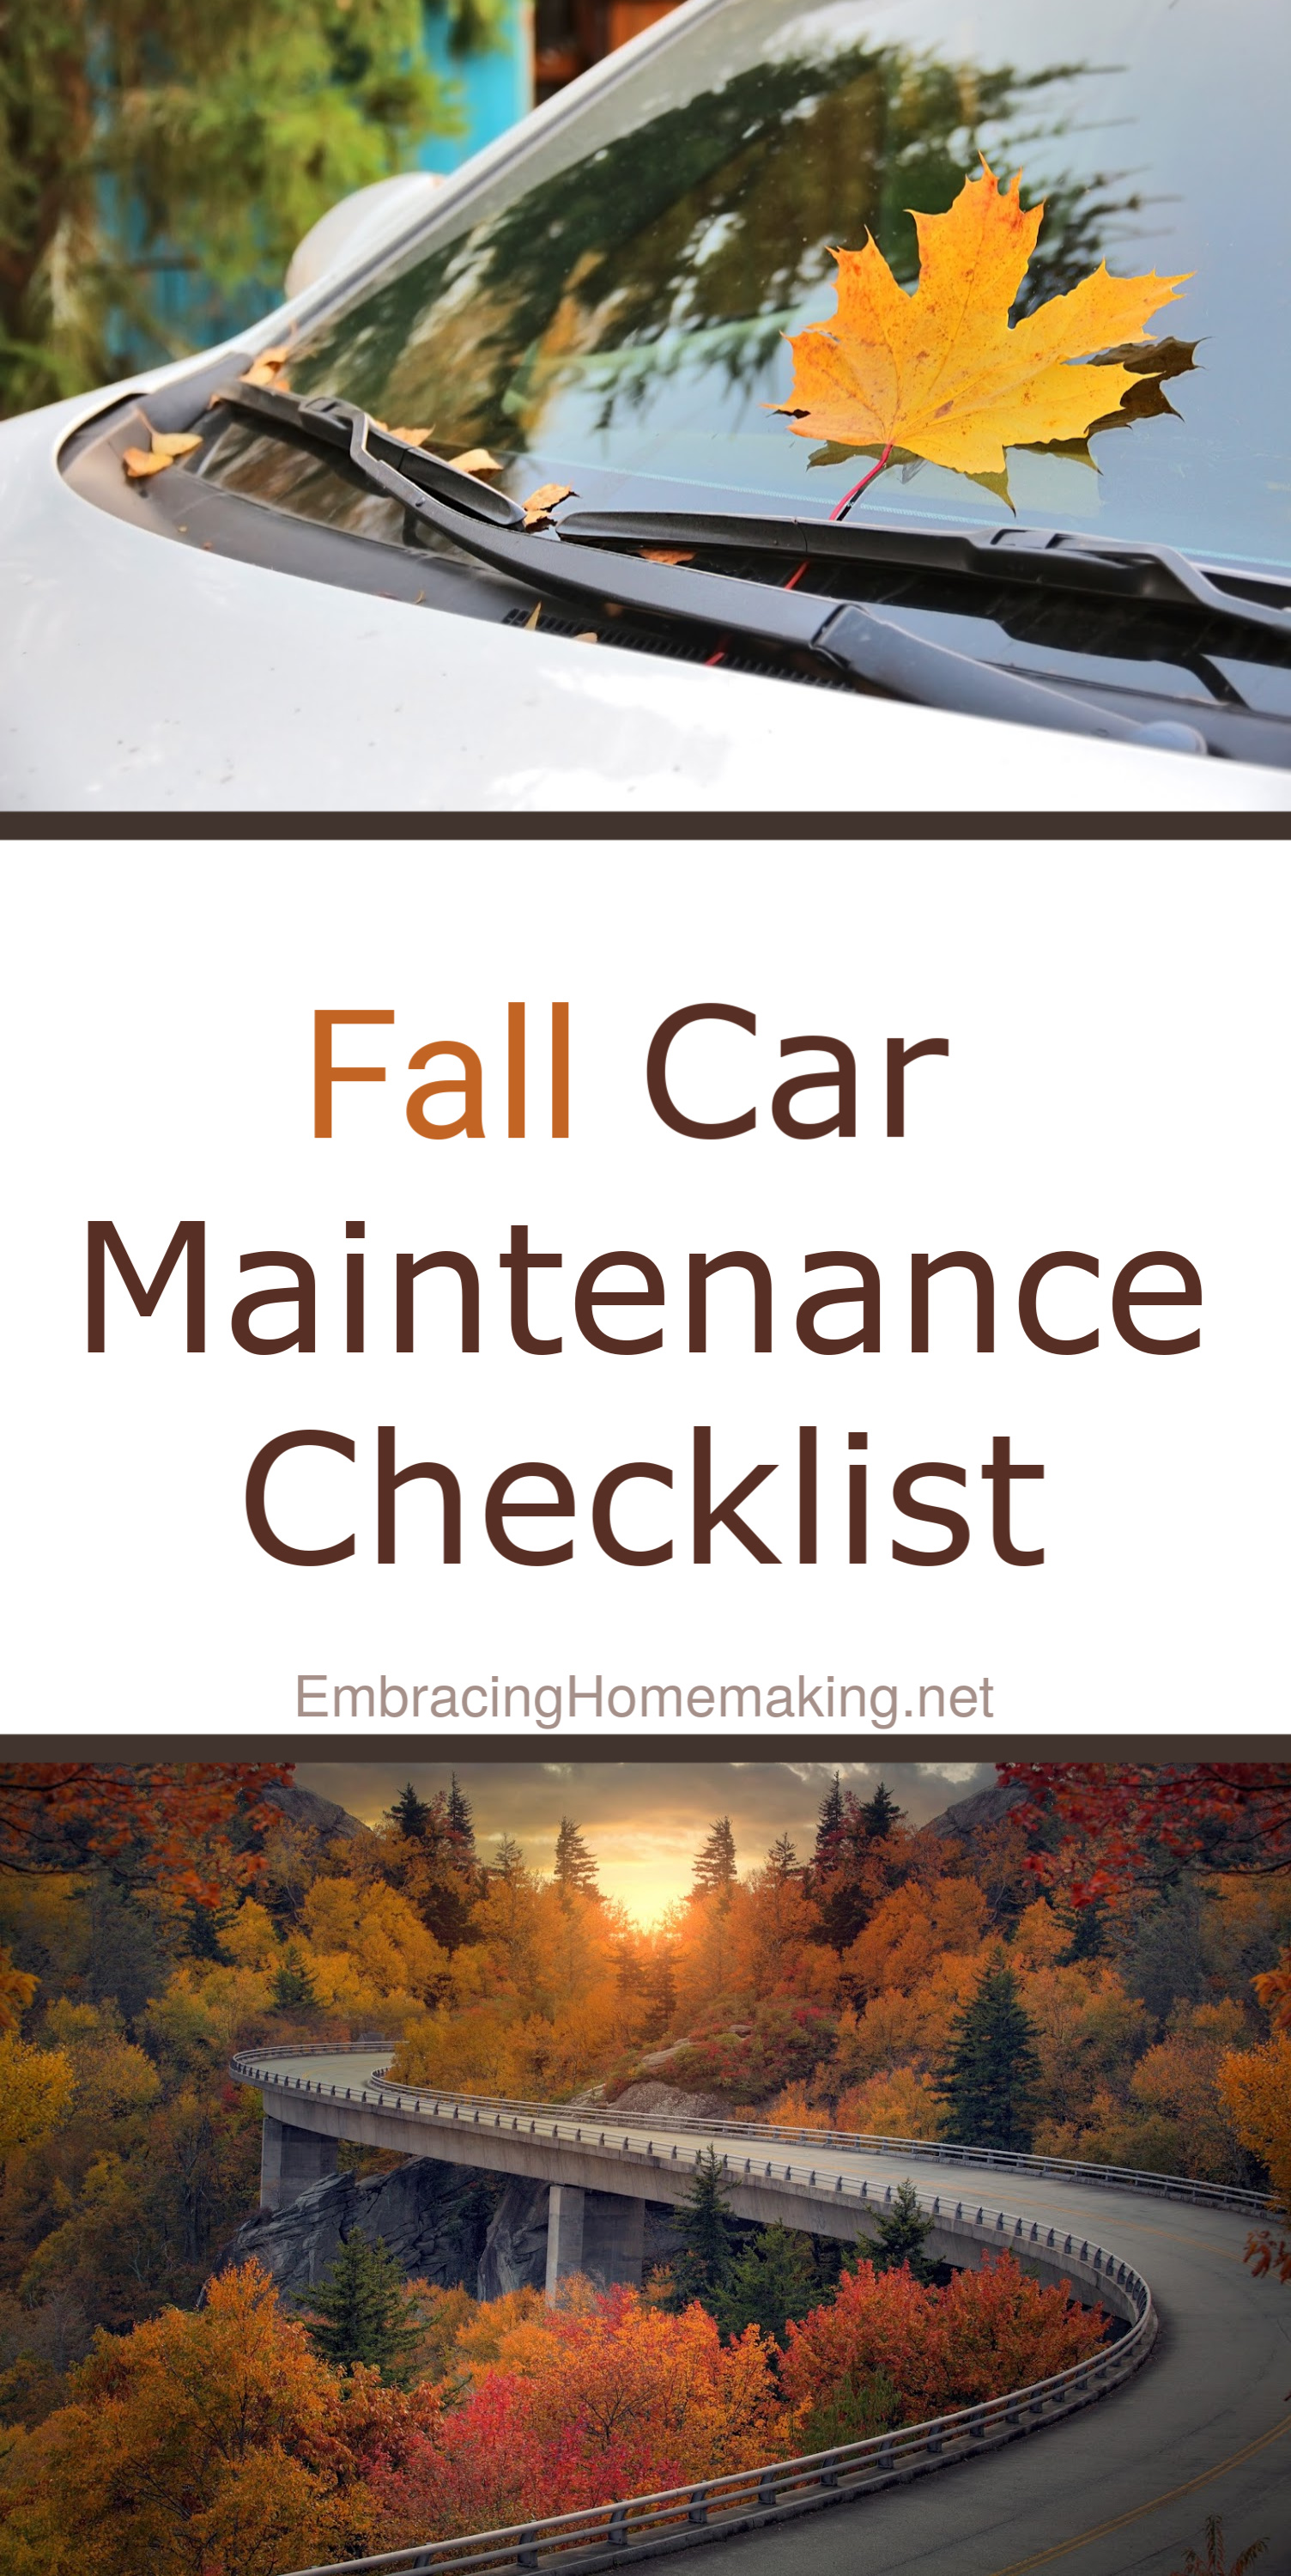 Fall Car Maintenance